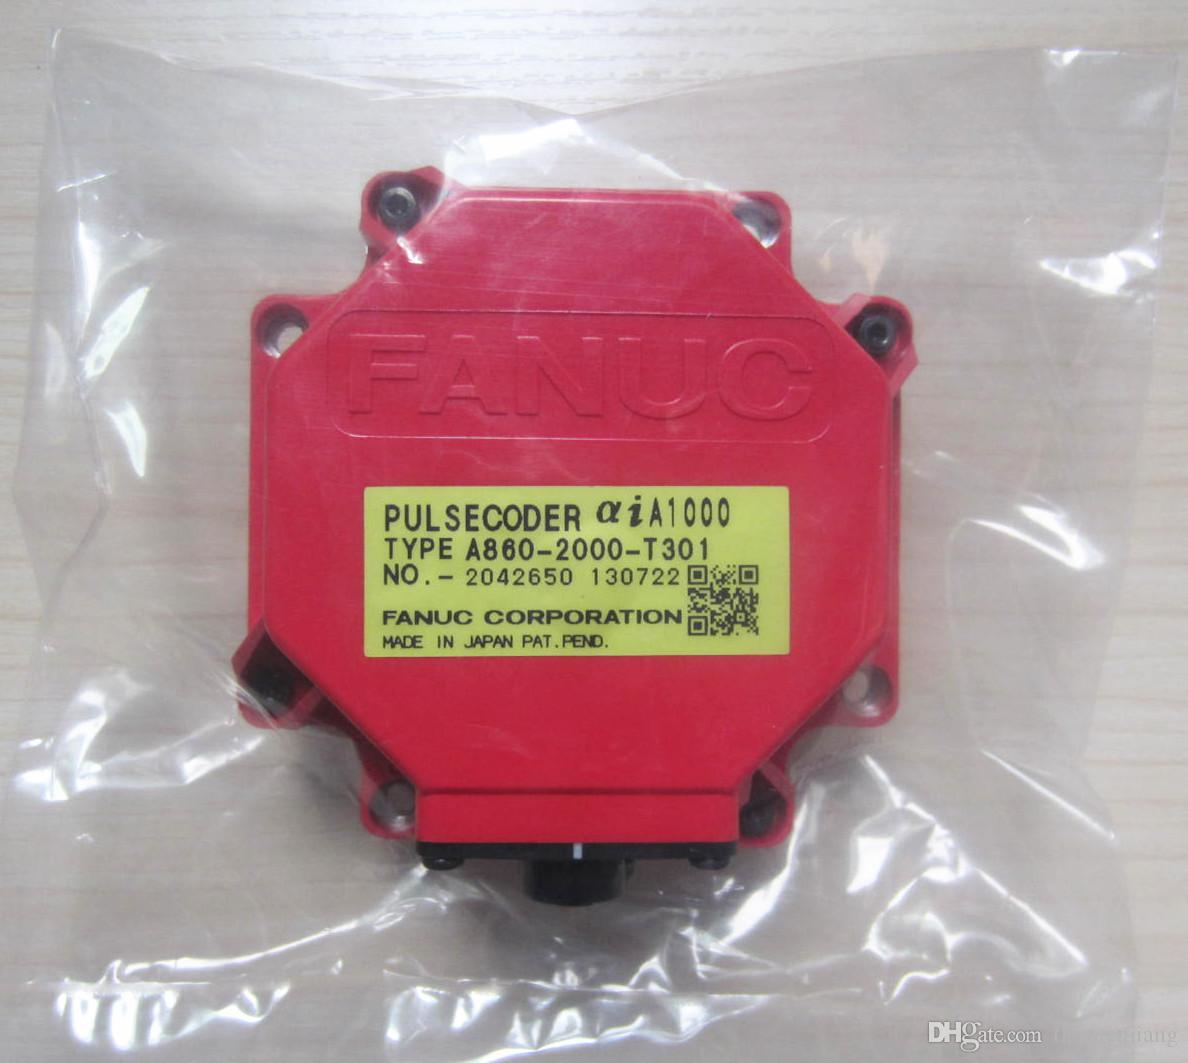 1 PC Original Fanuc A860-2000-T301 Servo Motor Encoder Pulse Coder Free Expedited Shipping New/Used Test In Good Condition